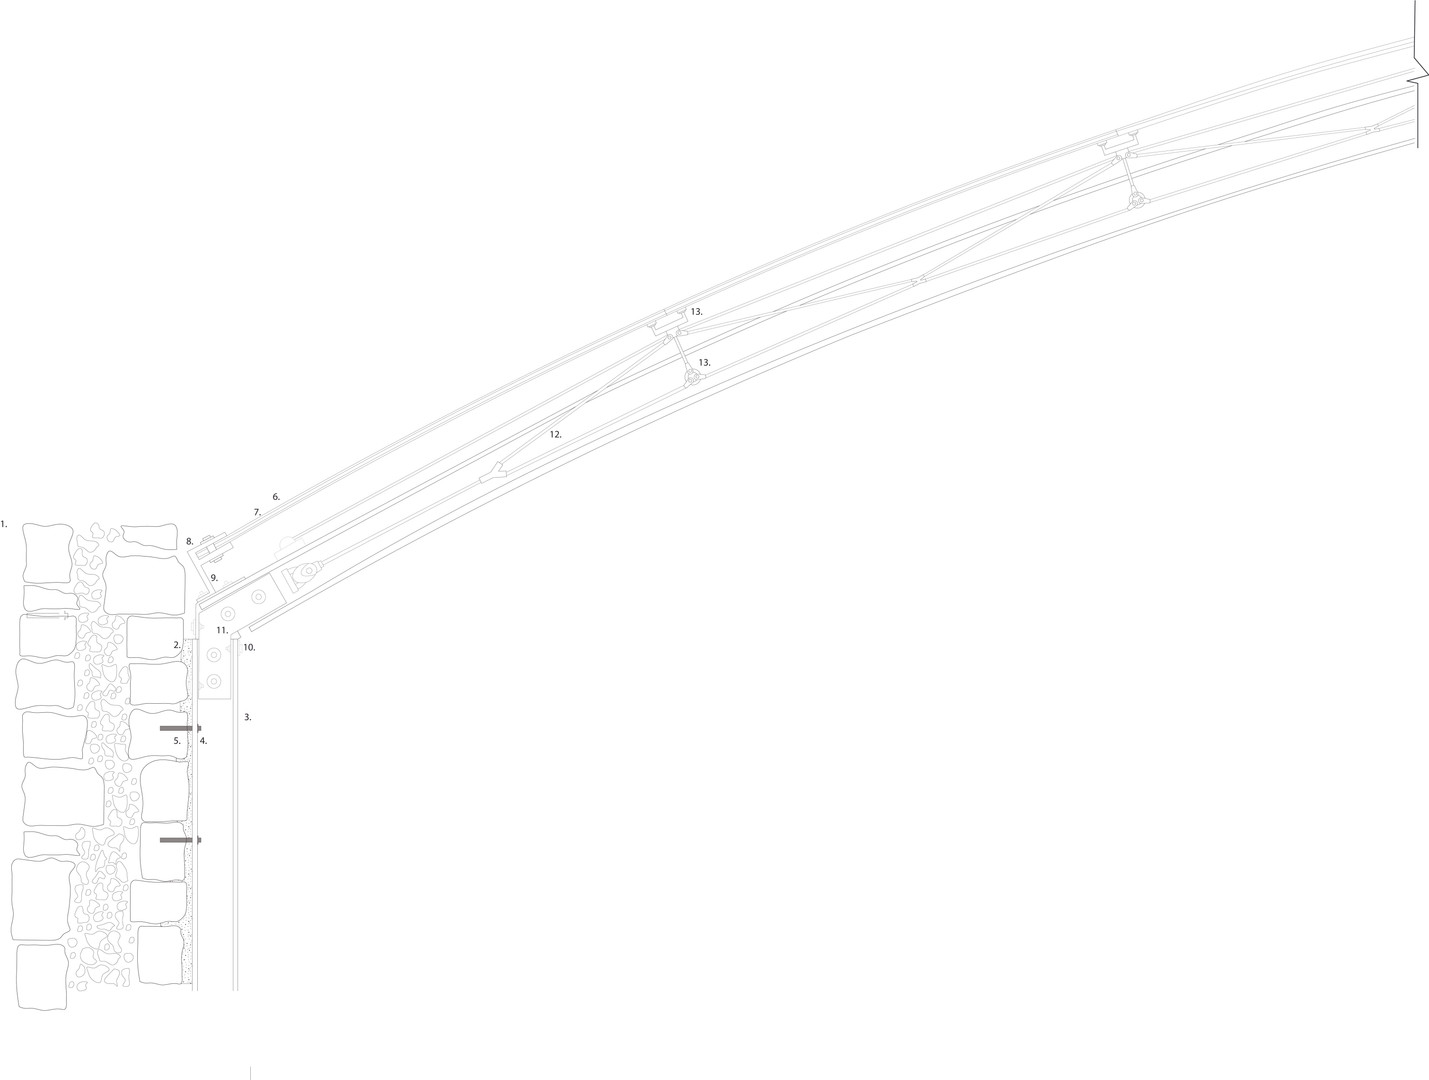 1:5 Existing wall, to Steel Column to Tensile Cable Net Structure